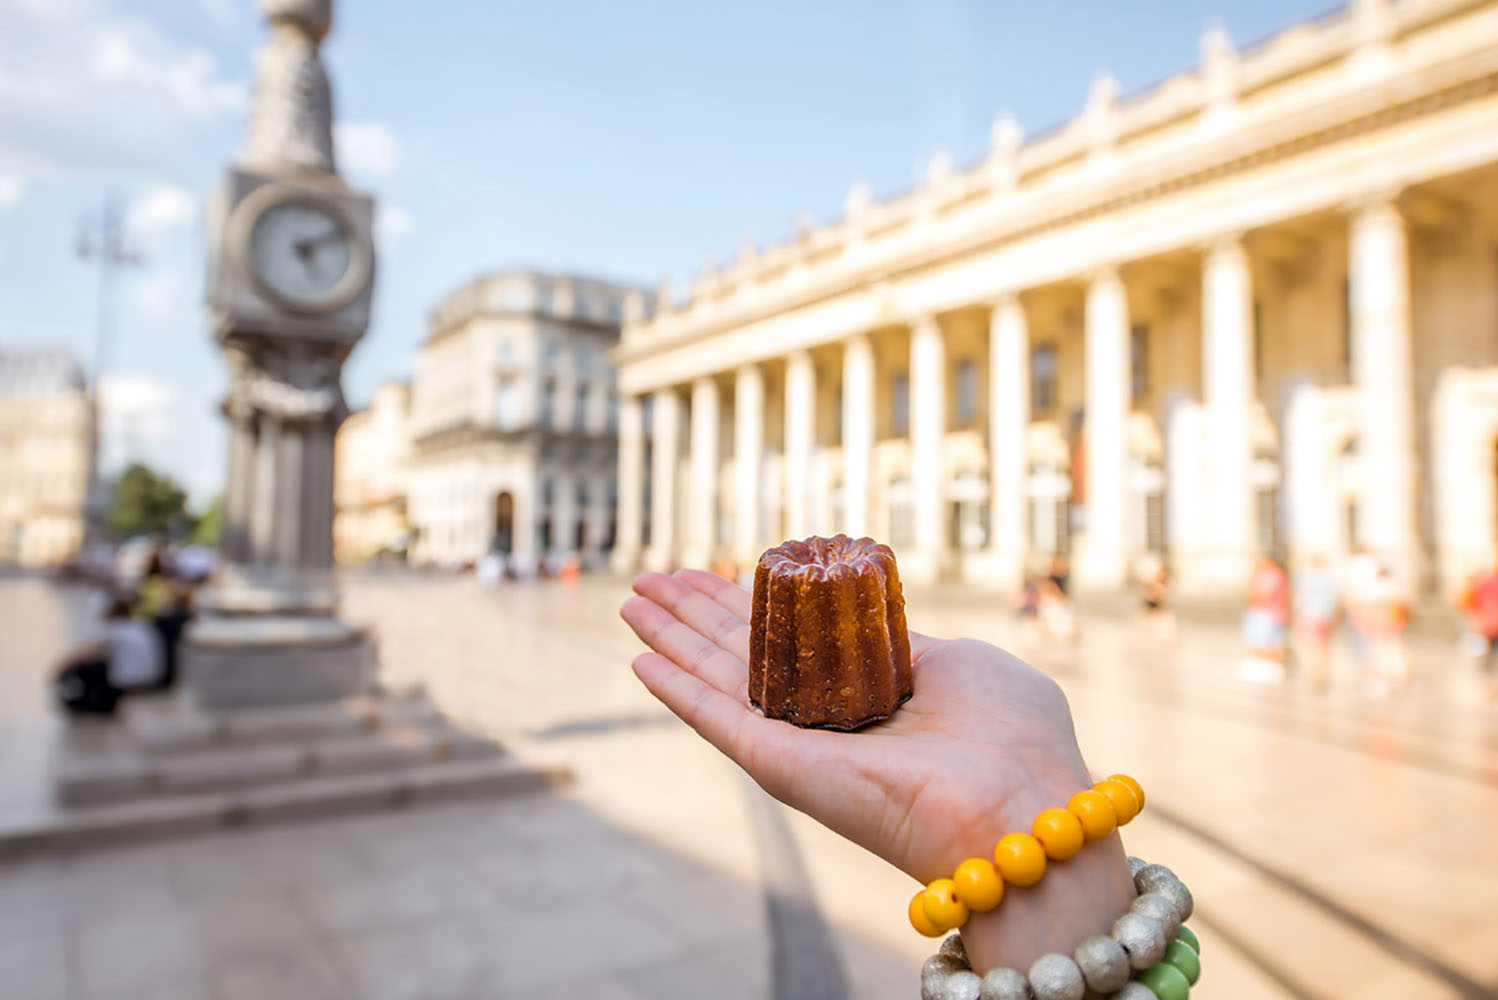 Canelé is a cylinder-shaped vanilla and rum-flavored pastry and a specialty of Bordeaux.